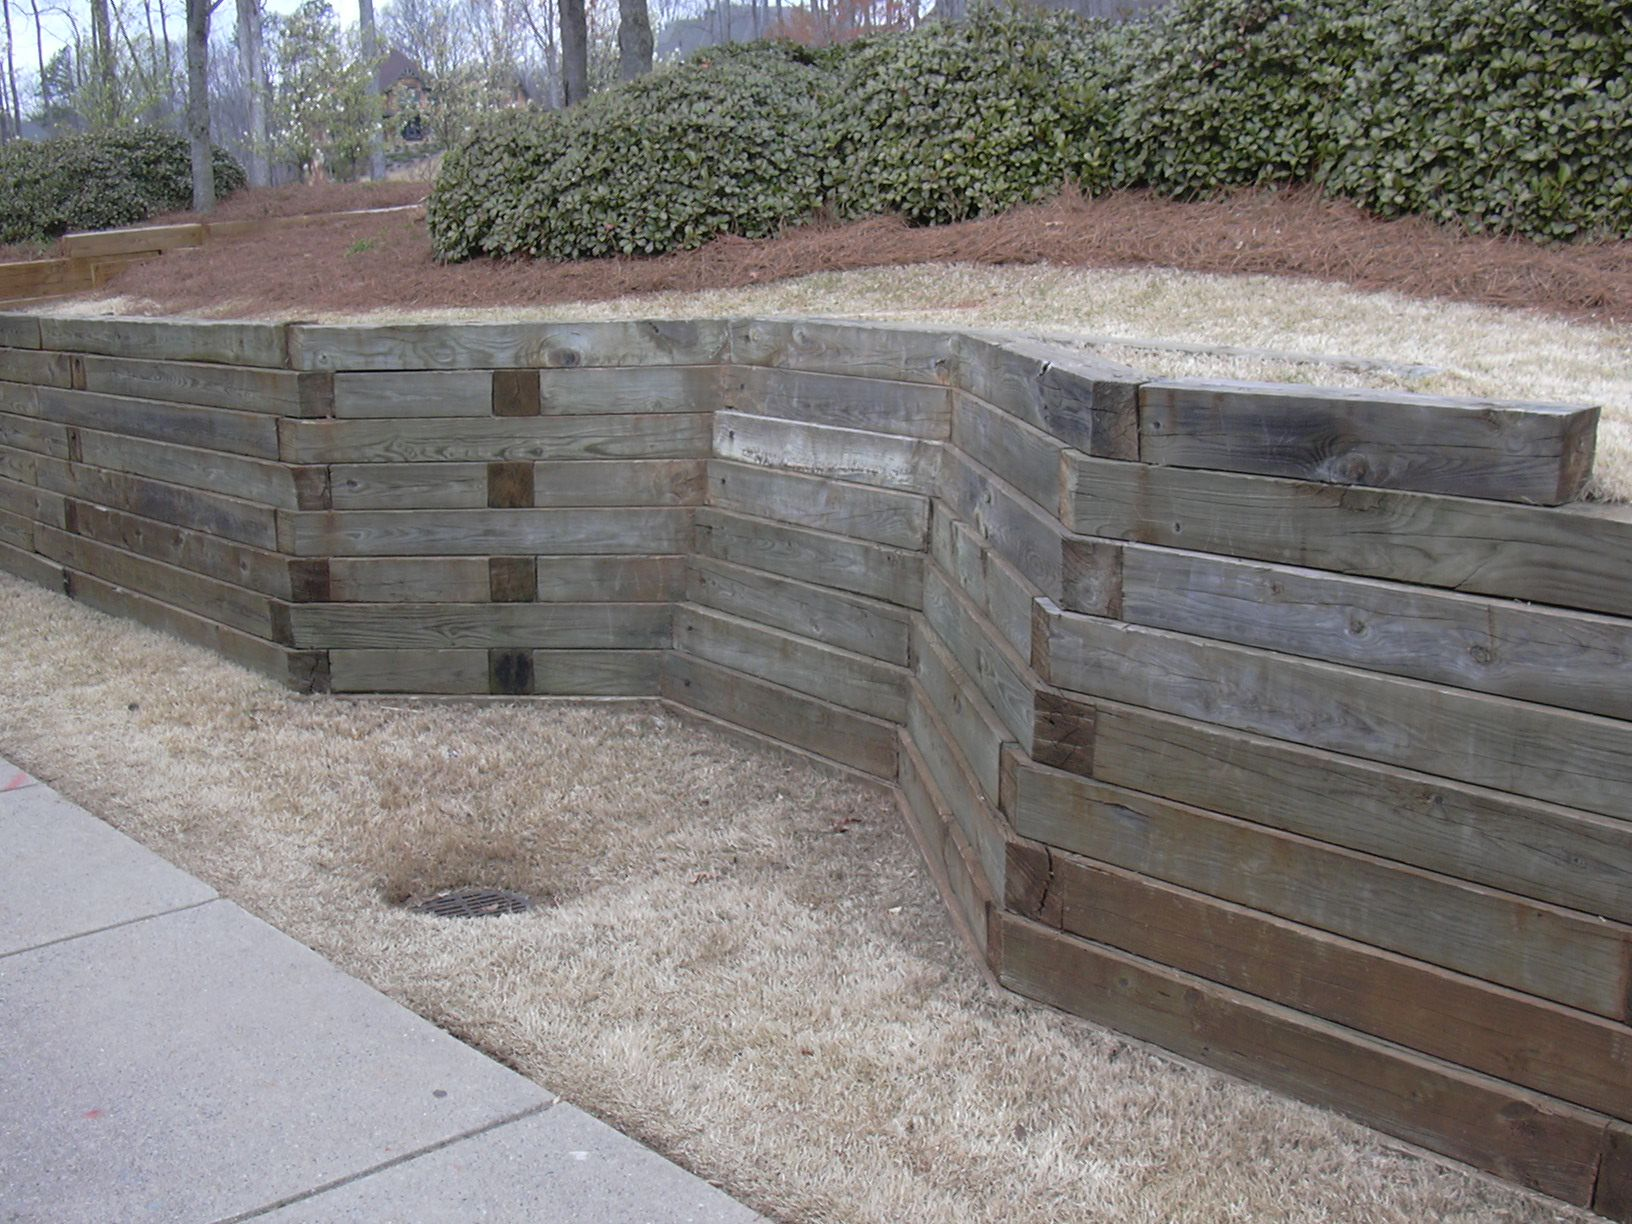 Landscape Design Retaining Wall Ideas contemporary landscape design ideas pictures remodel and decor Traditional Landscape Timbers As Fence Posts Retaining Wall Ideas Small Backyard Landscaping Ideas Ideas And Hot Home Depot Landscape Timbers